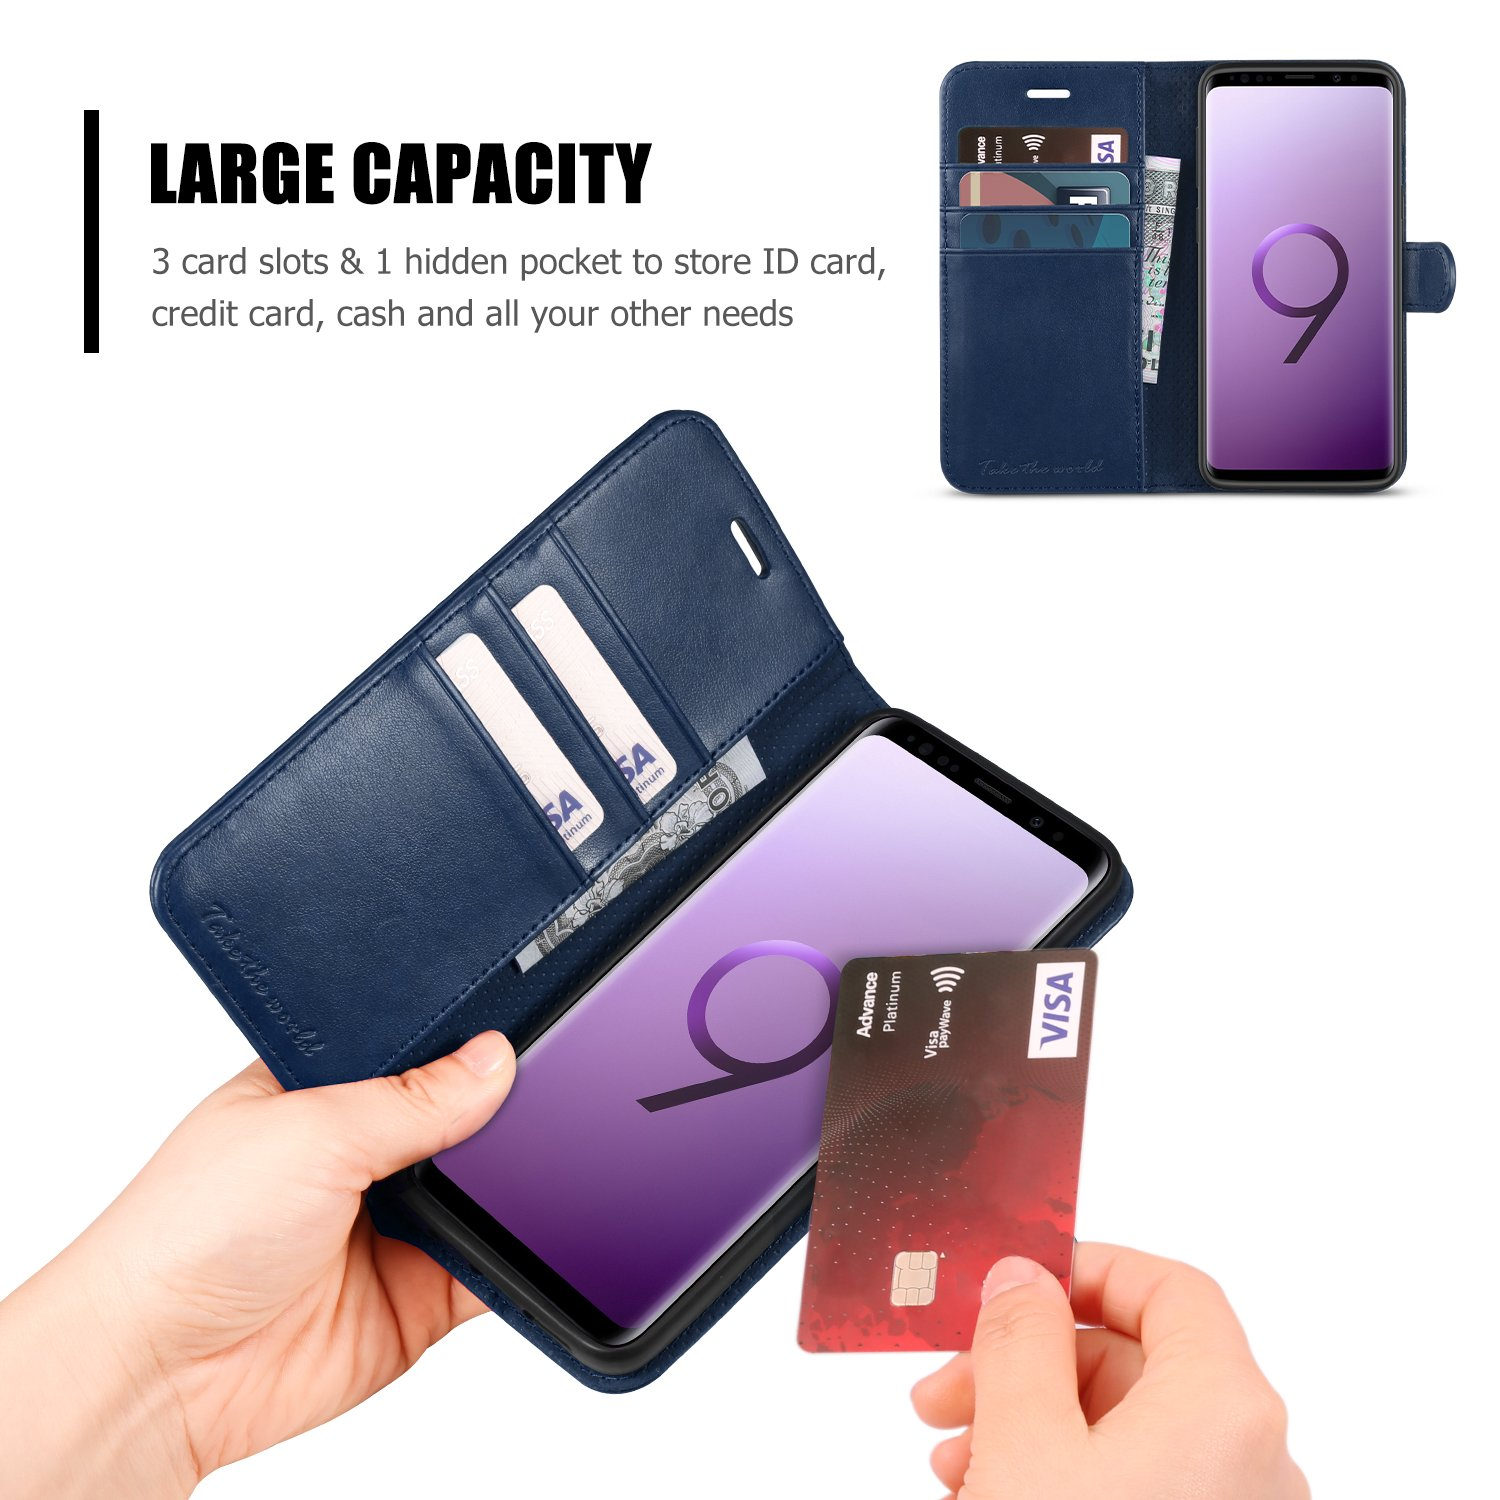 TUCCH Galaxy S9 Leather Case Wallet Case with Magnetic Clasp Compatible with Galaxy S9 Devices Blue Galaxy S9 Case Shock Absorbing Flip Case Cover with Stand Function Card Holder